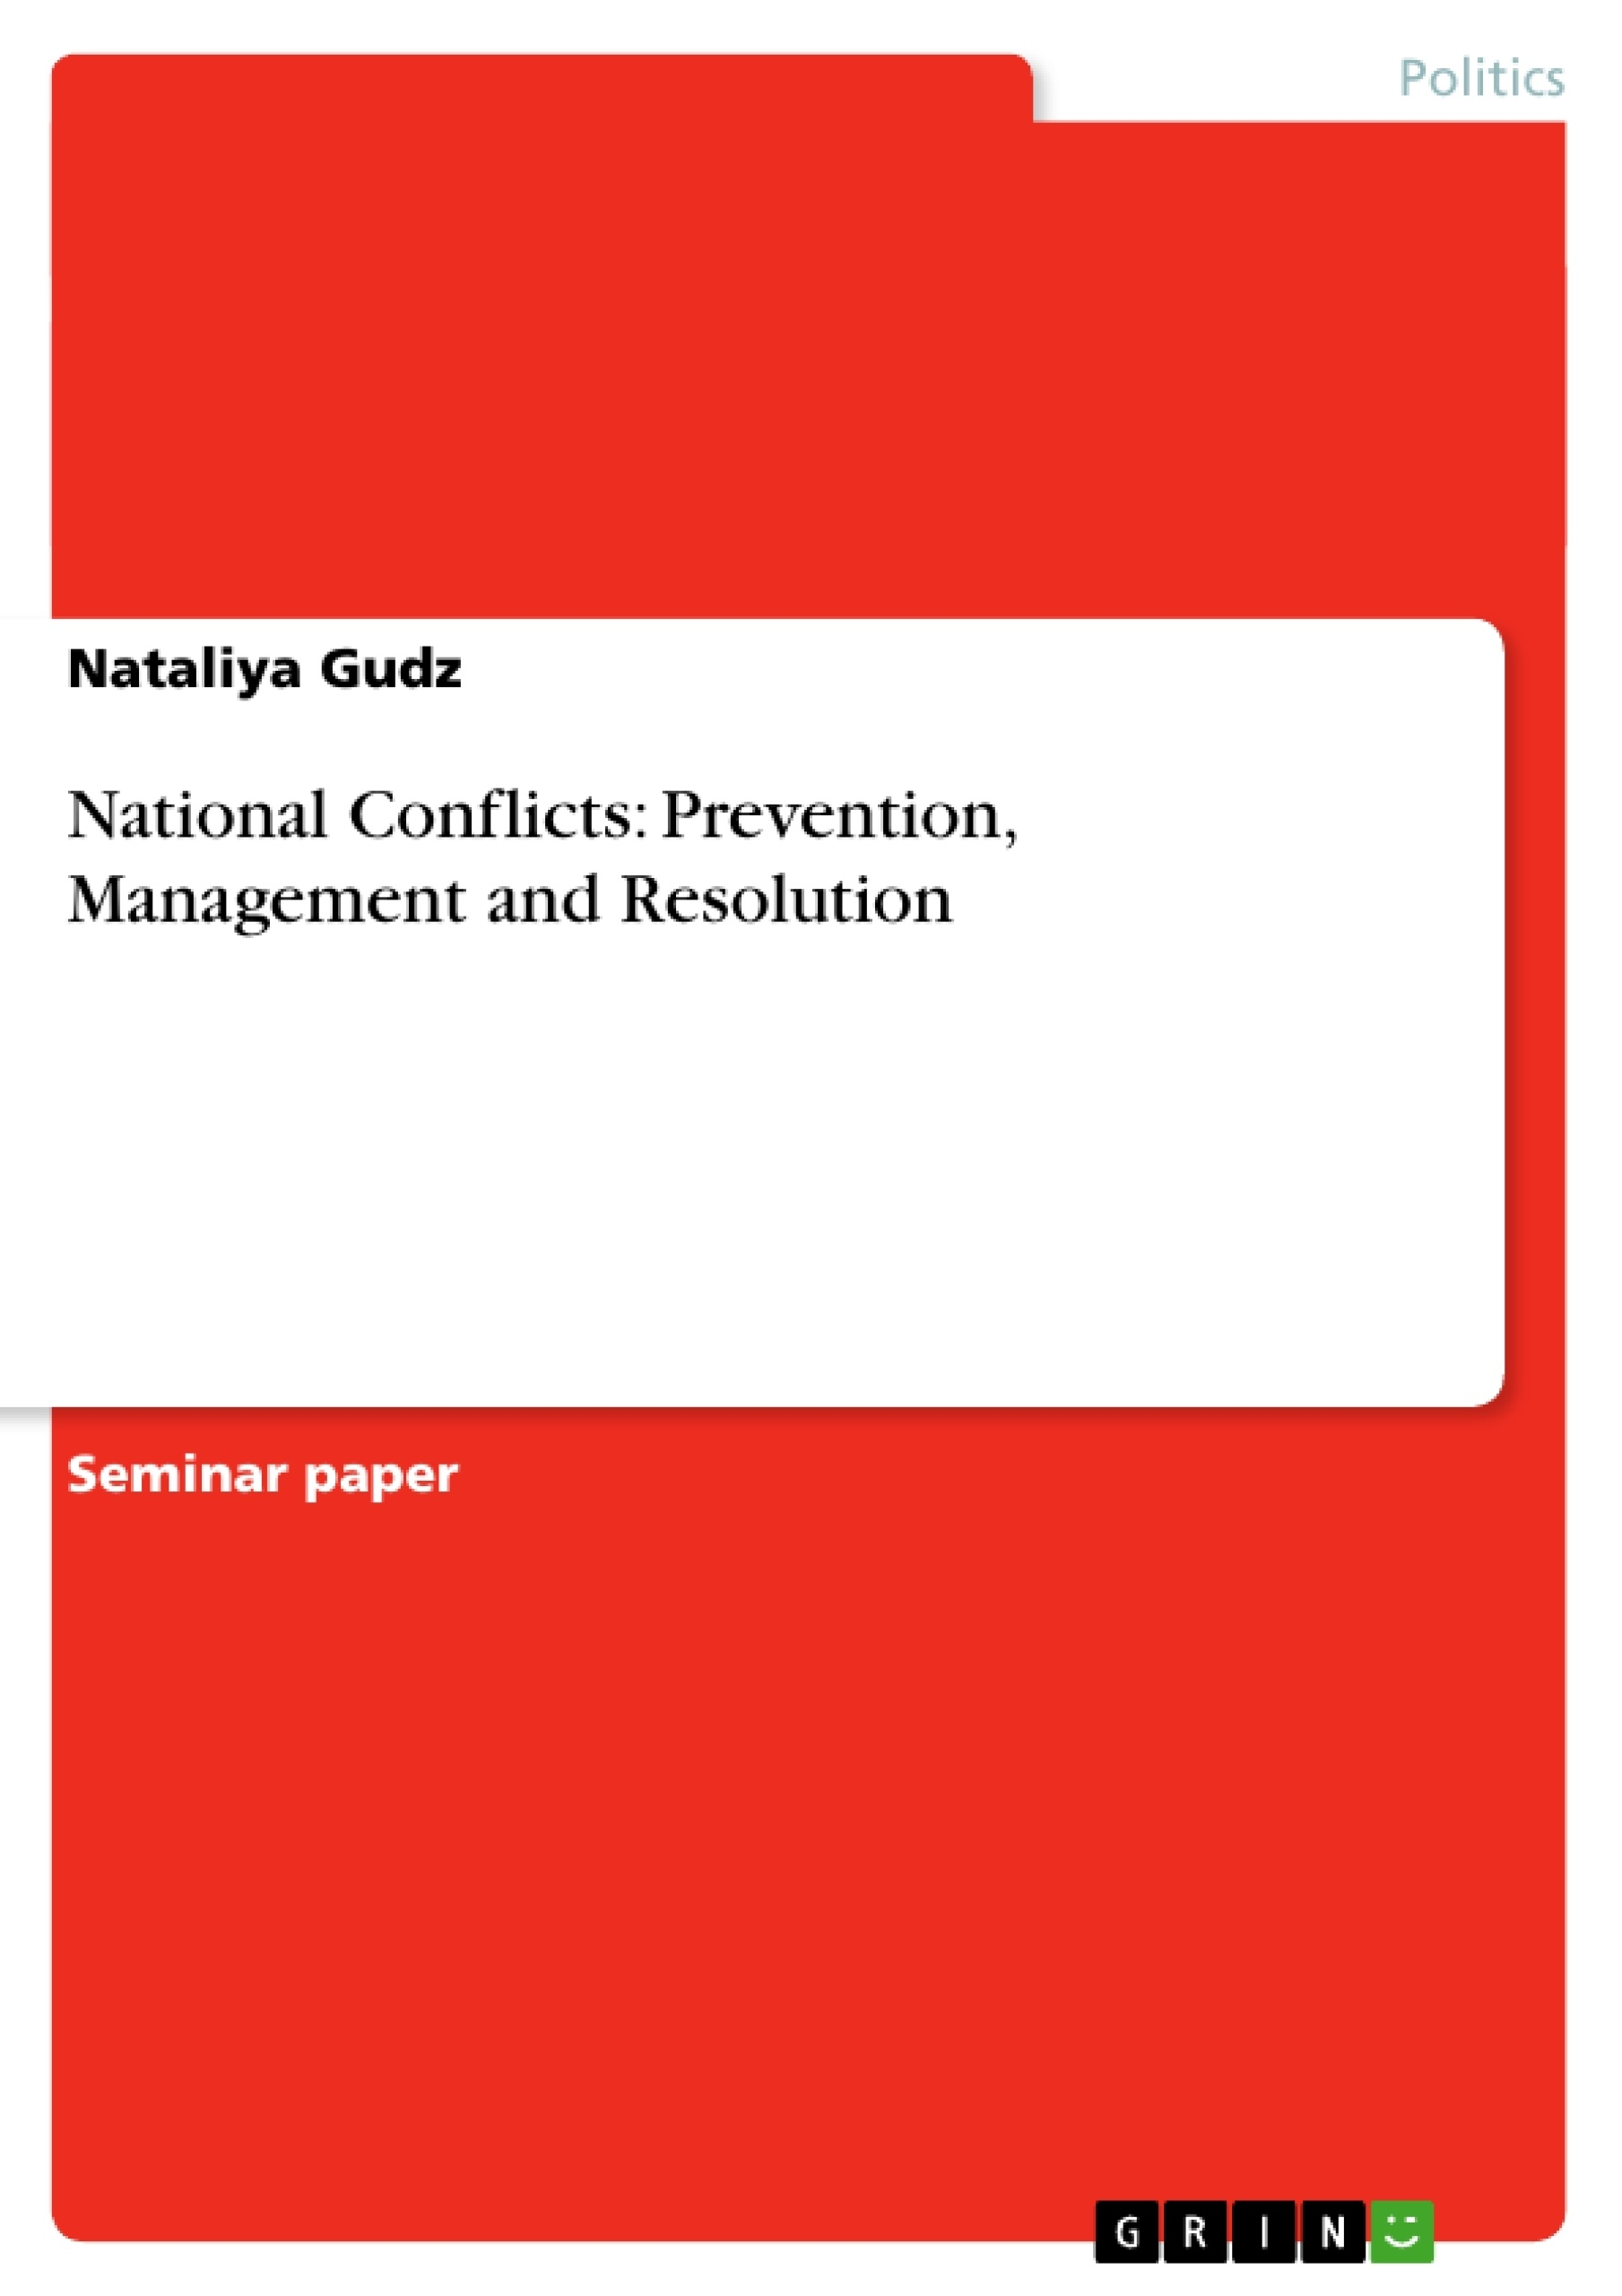 Title: National Conflicts: Prevention, Management and Resolution